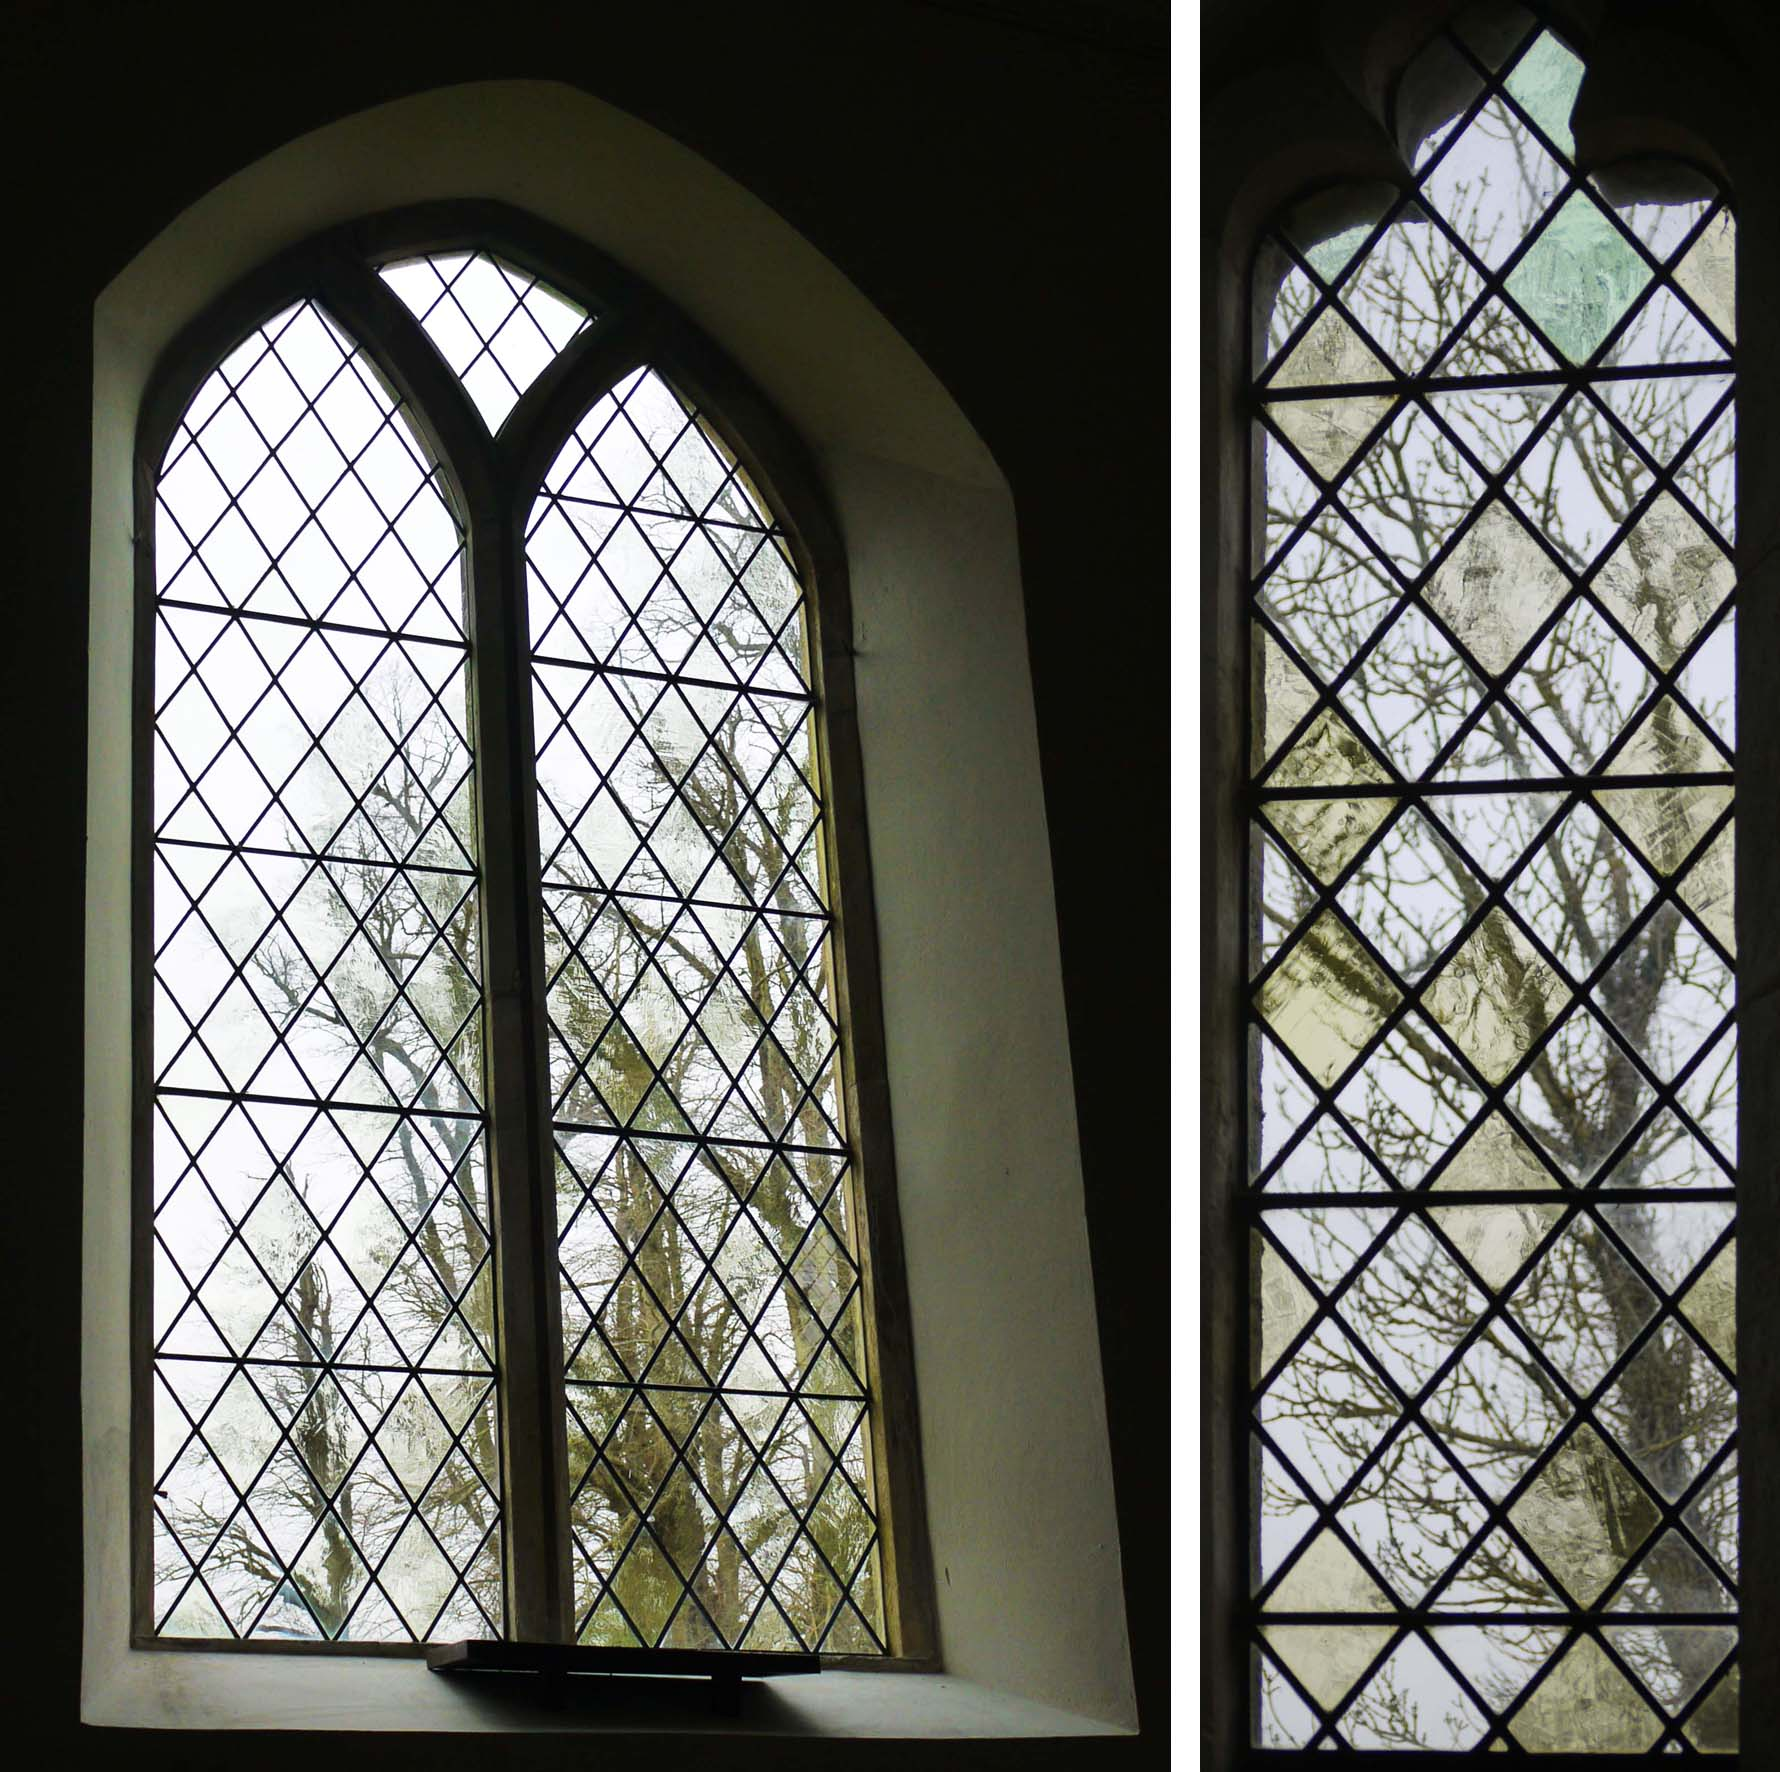 Pale and textured glass at Rushall